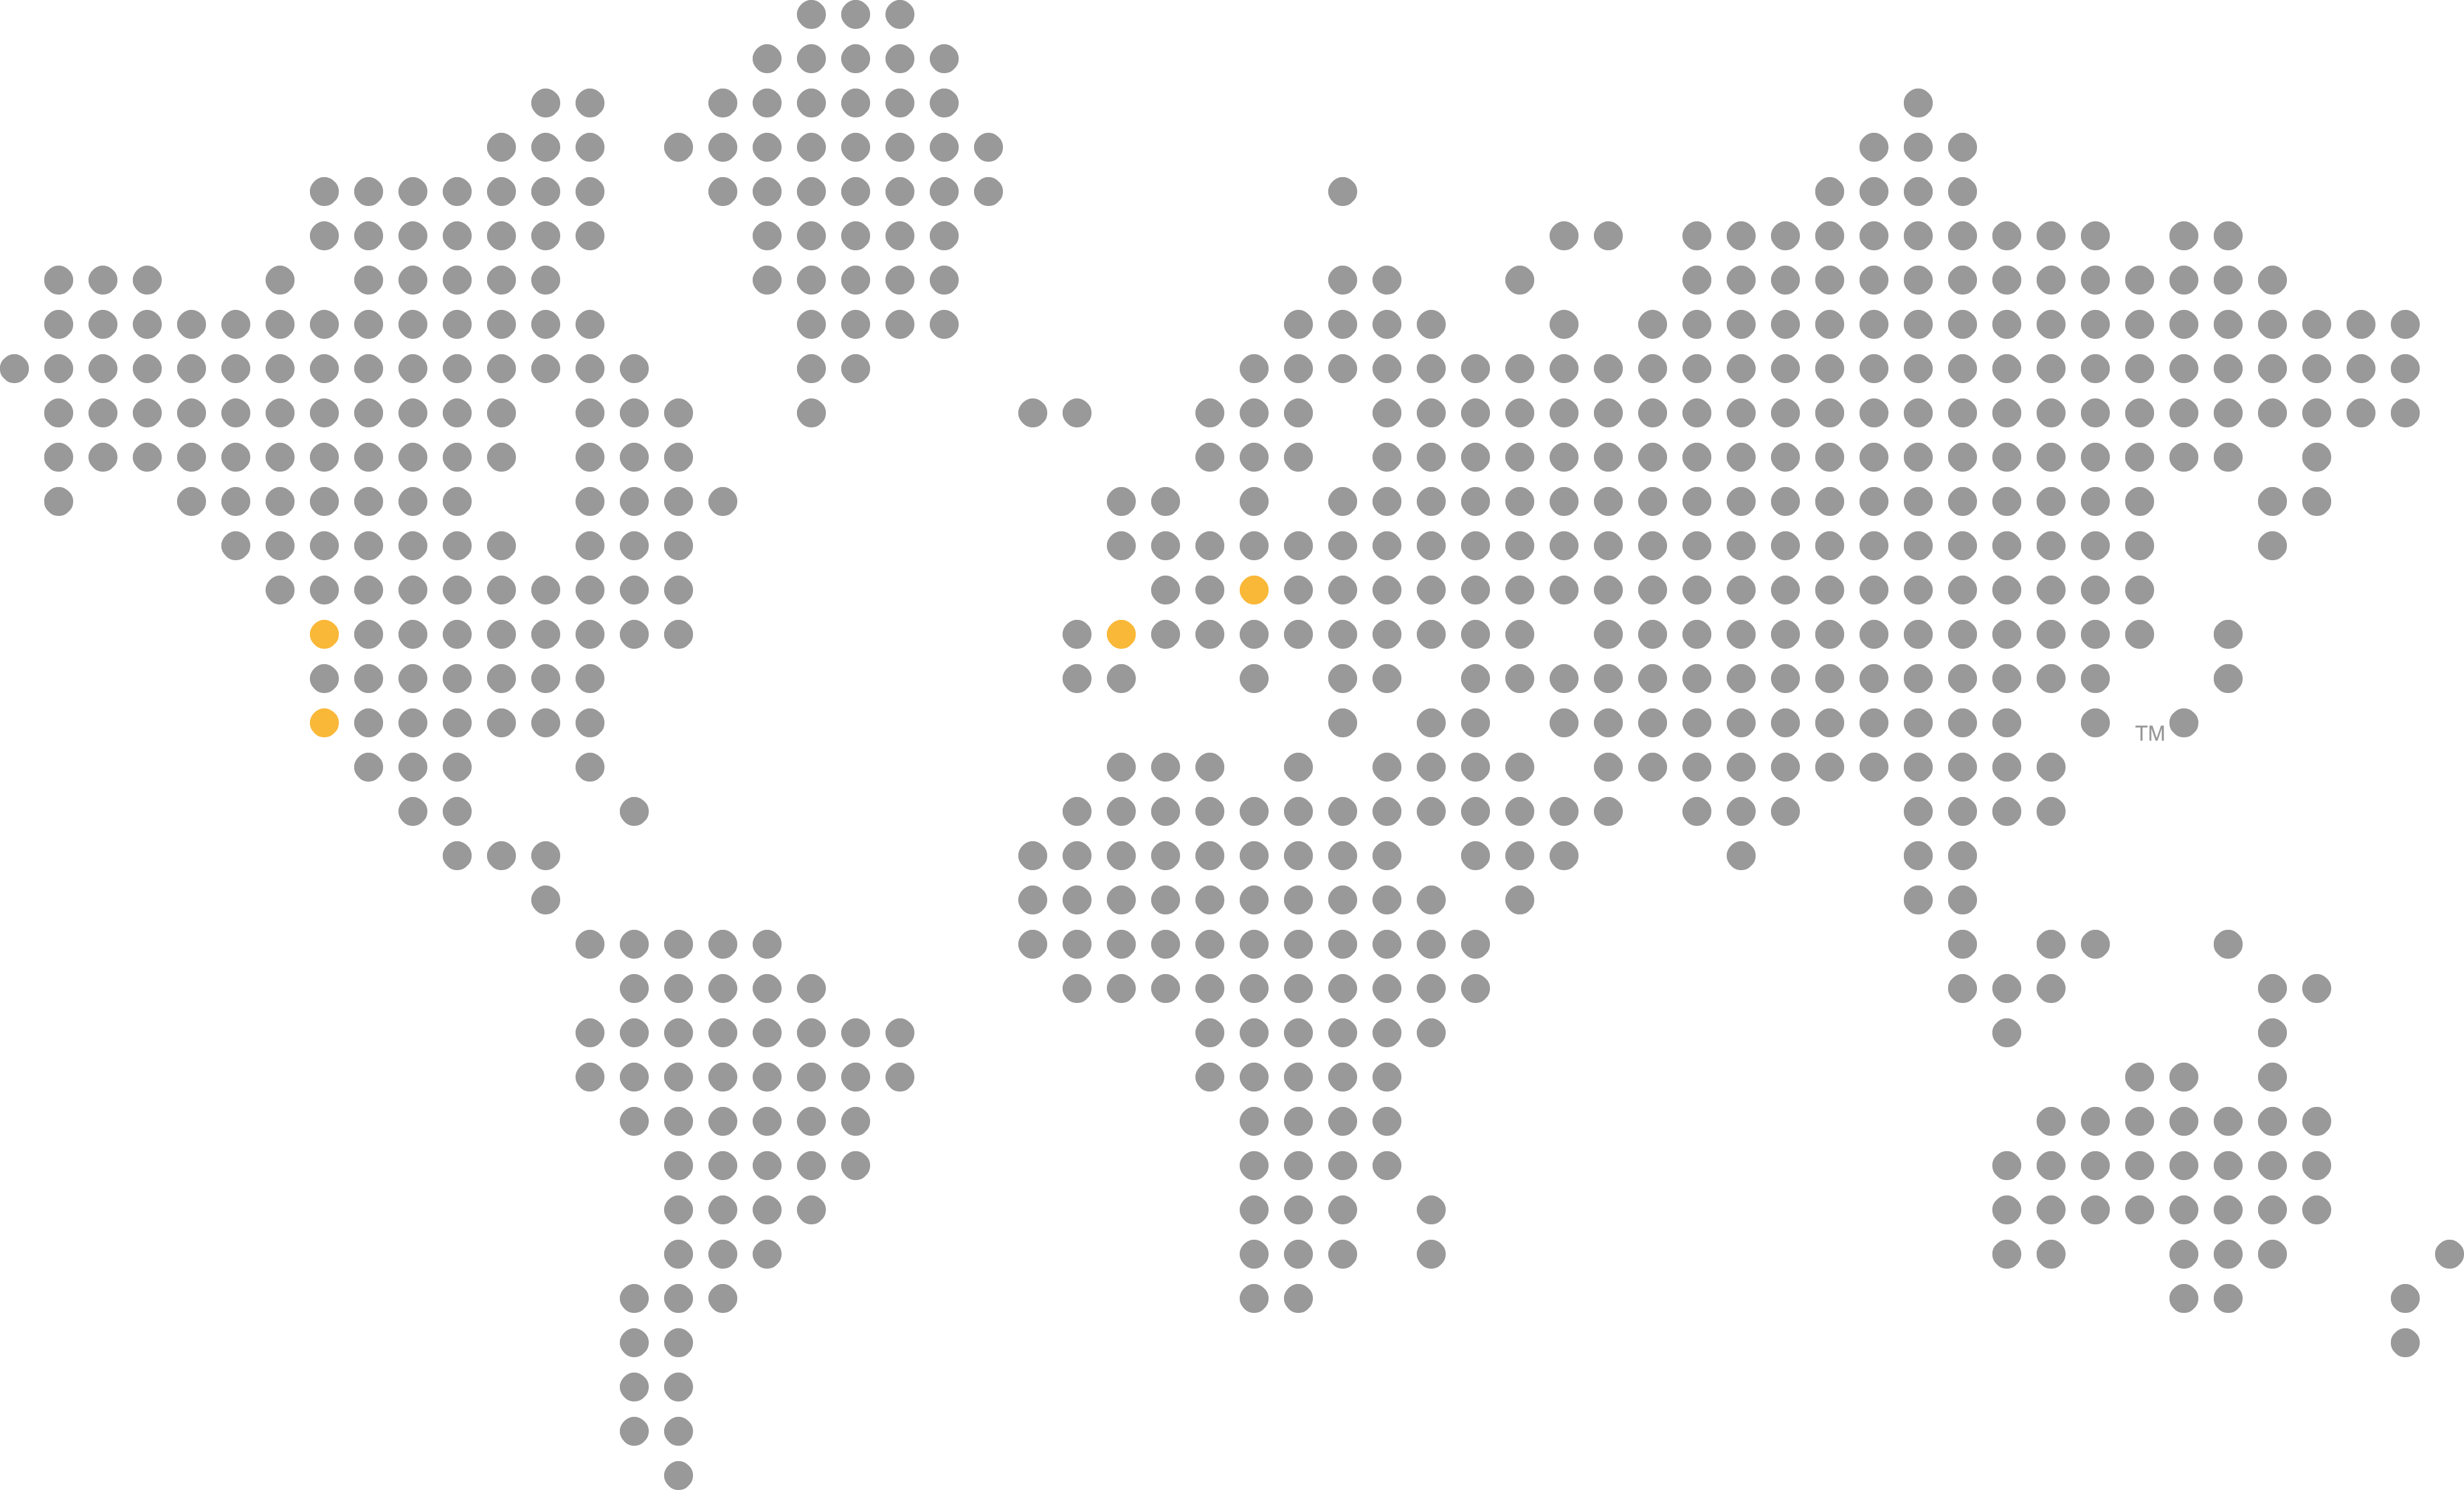 Maps vector dotted. World map png transparent